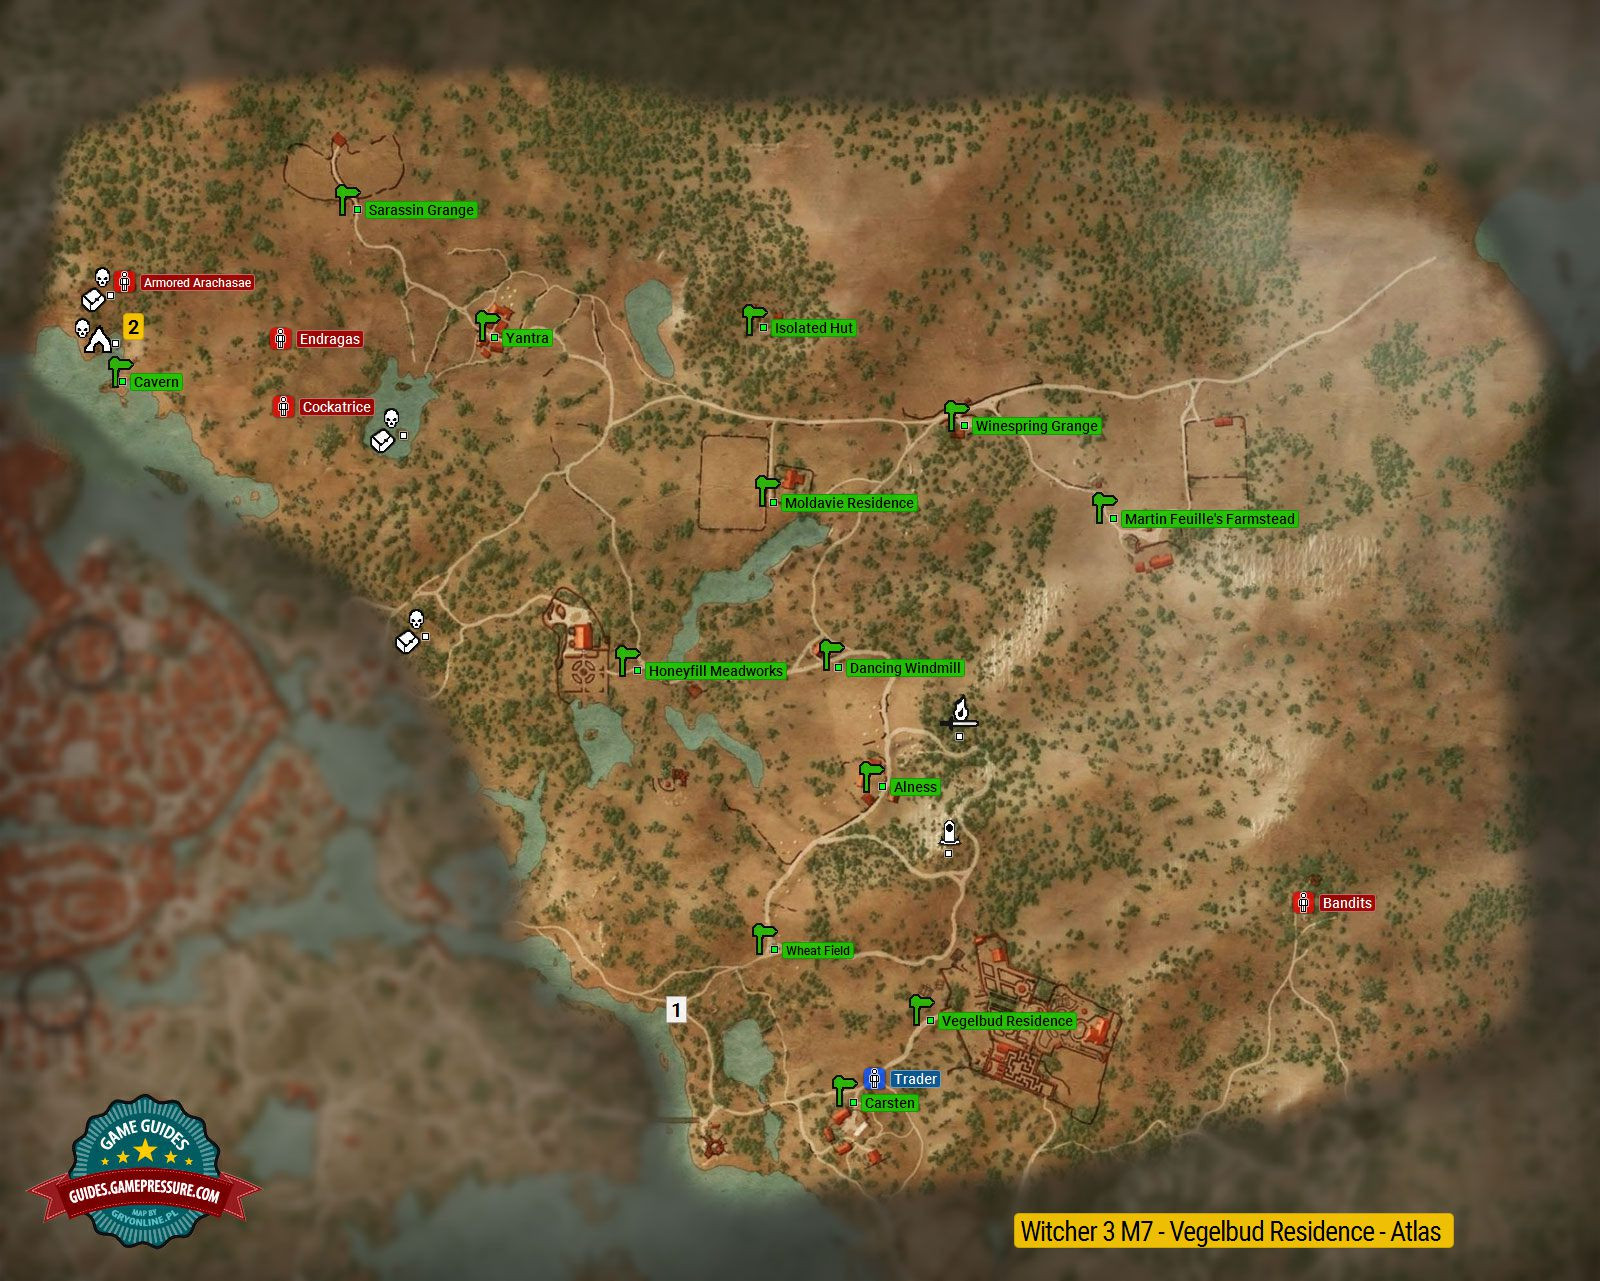 Witcher 3 Printable Maps Lovely Map Of Important Locations In Vegelbud Residence M7 the Witcher 3